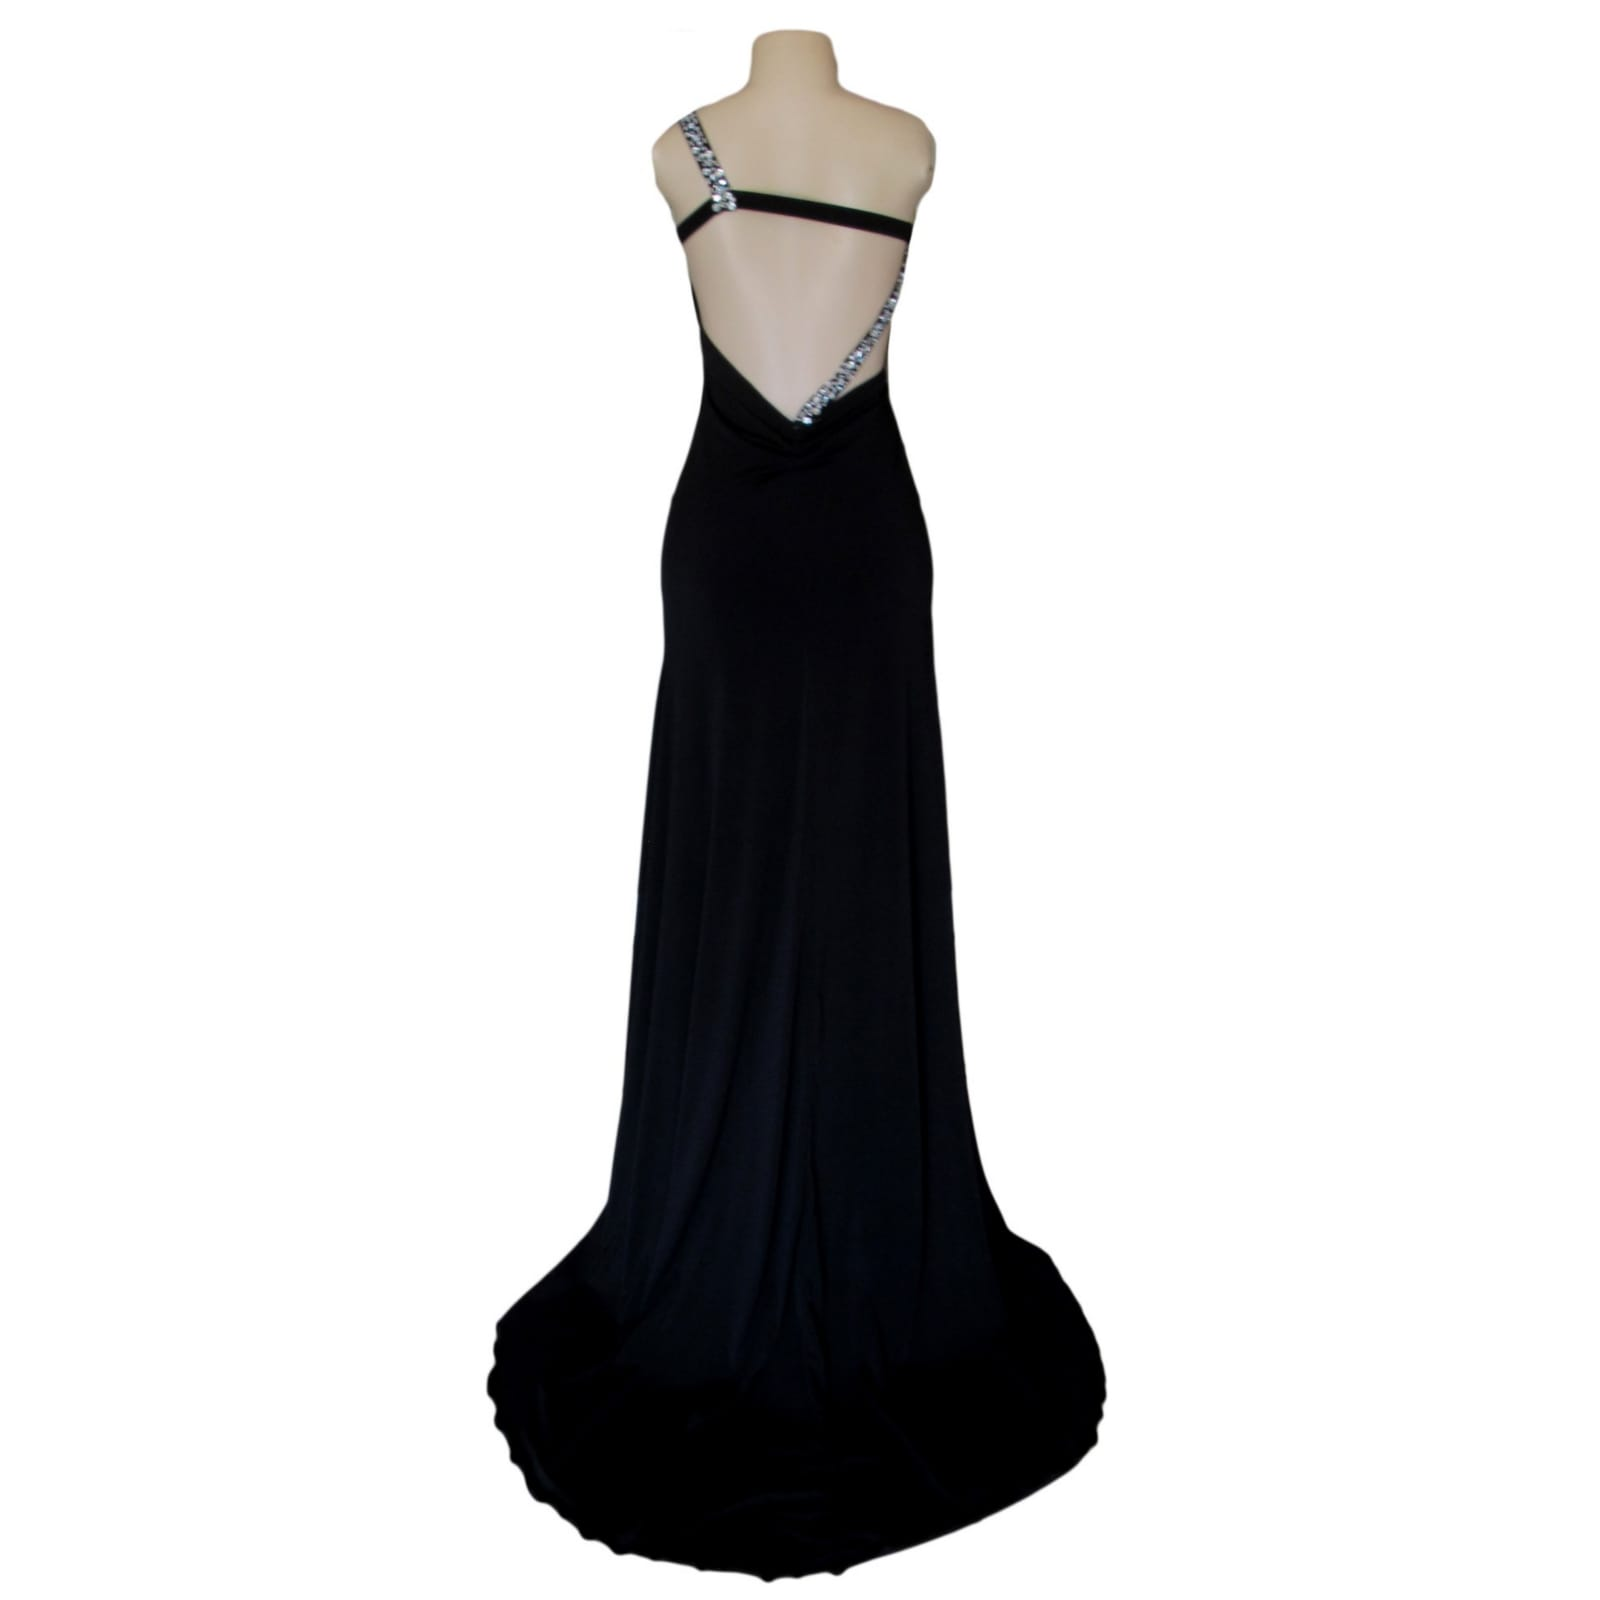 Black long formal dress with a low open back 5 black long formal dress with a low open back. Shoulder strap design detailed with silver beads and a slit.